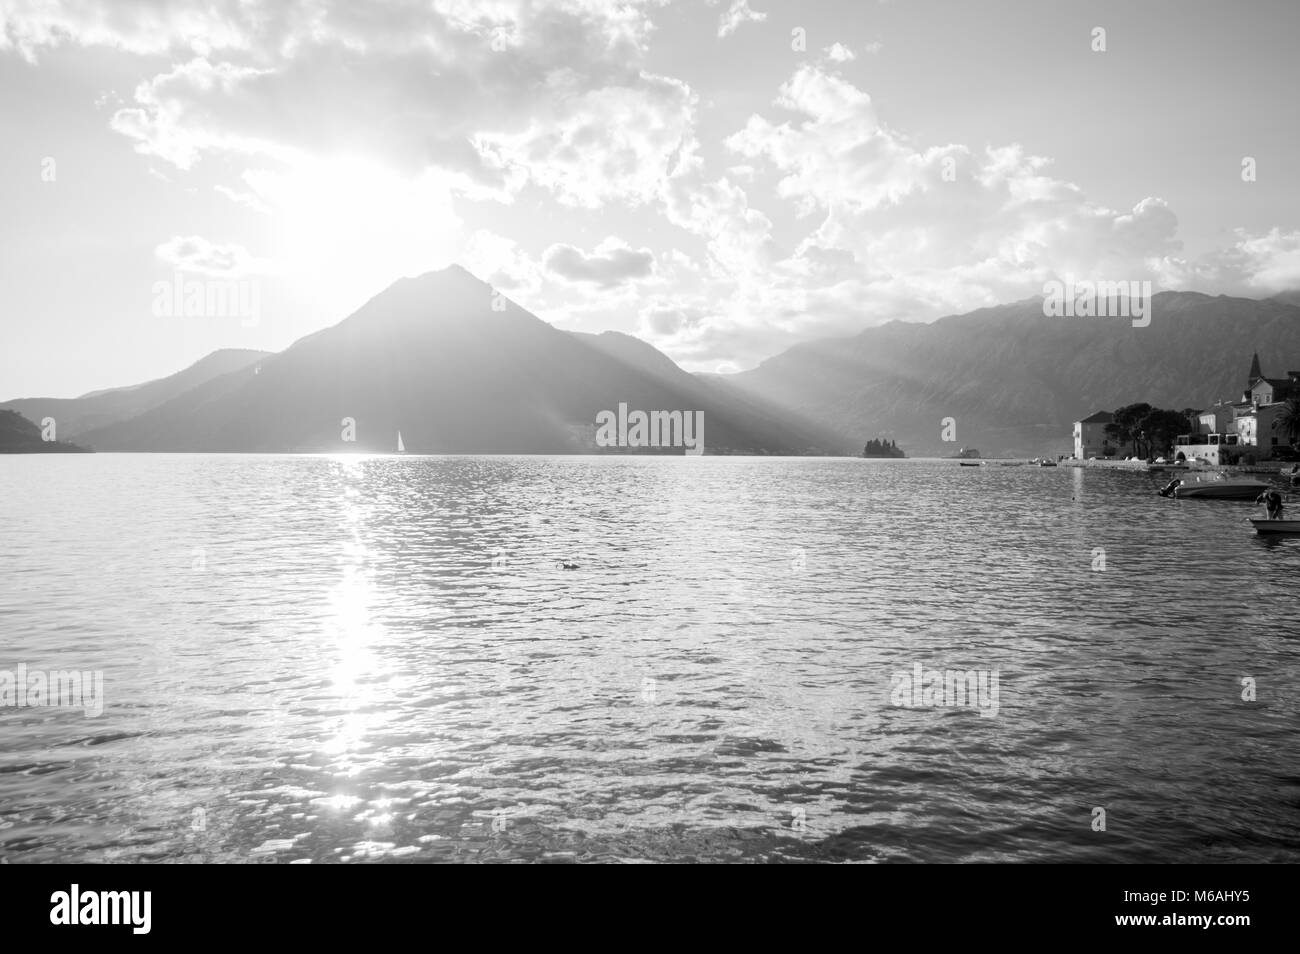 Different Perspective on Perast with Fisherman, Bay of Kotor, Montenegro - Stock Image